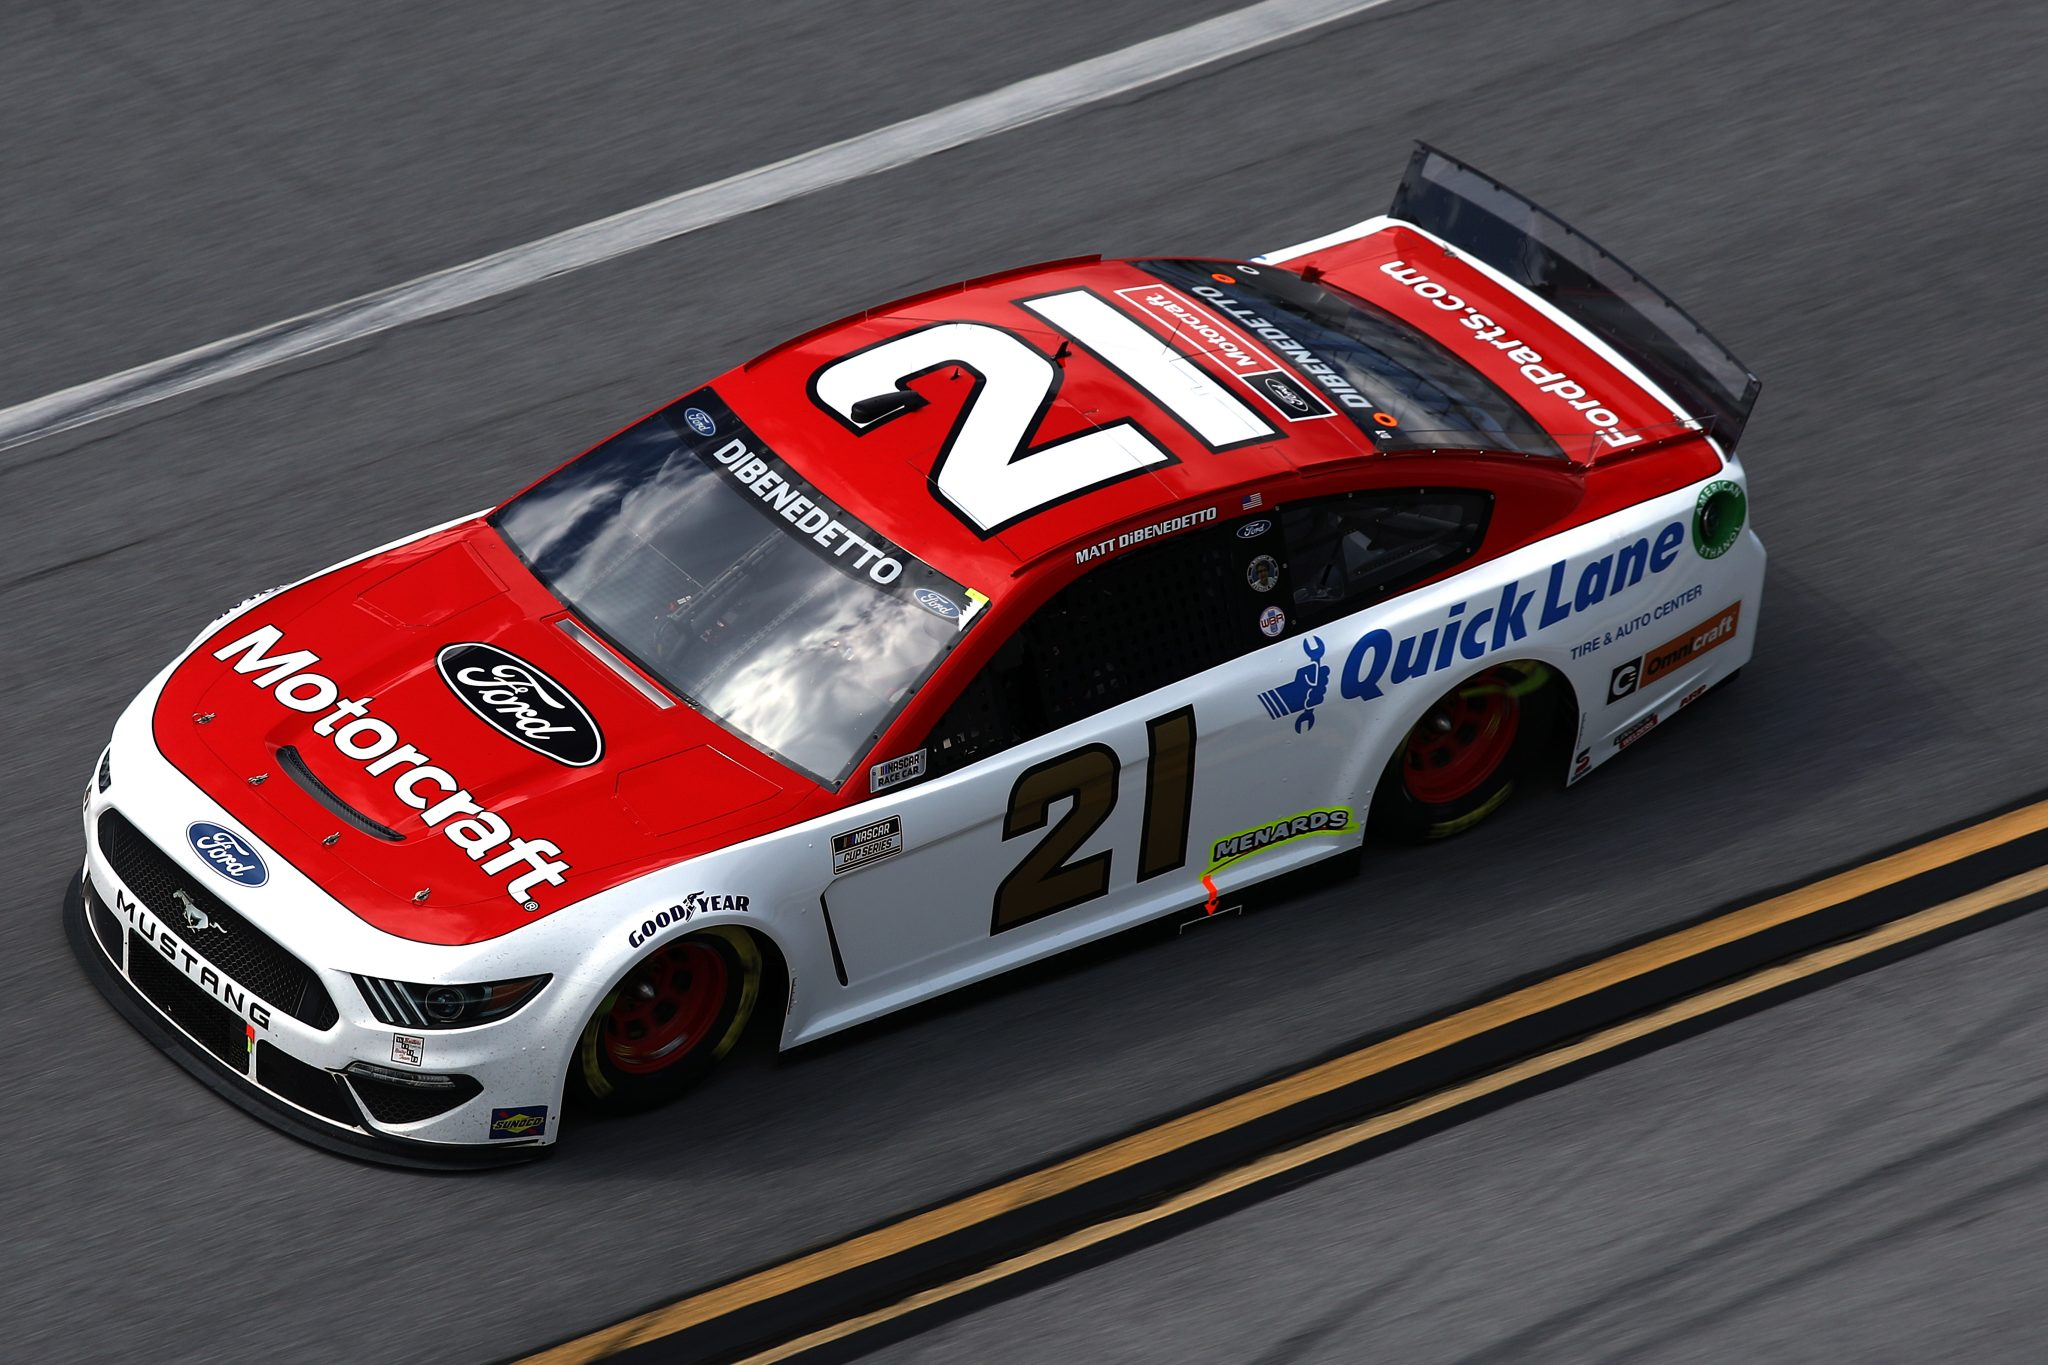 TALLADEGA, ALABAMA - APRIL 25: Matt DiBenedetto, driver of the #21 Motorcraft Quick Lane Ford, drives during the NASCAR Cup Series GEICO 500 at Talladega Superspeedway on April 25, 2021 in Talladega, Alabama. (Photo by Sean Gardner/Getty Images) | Getty Images